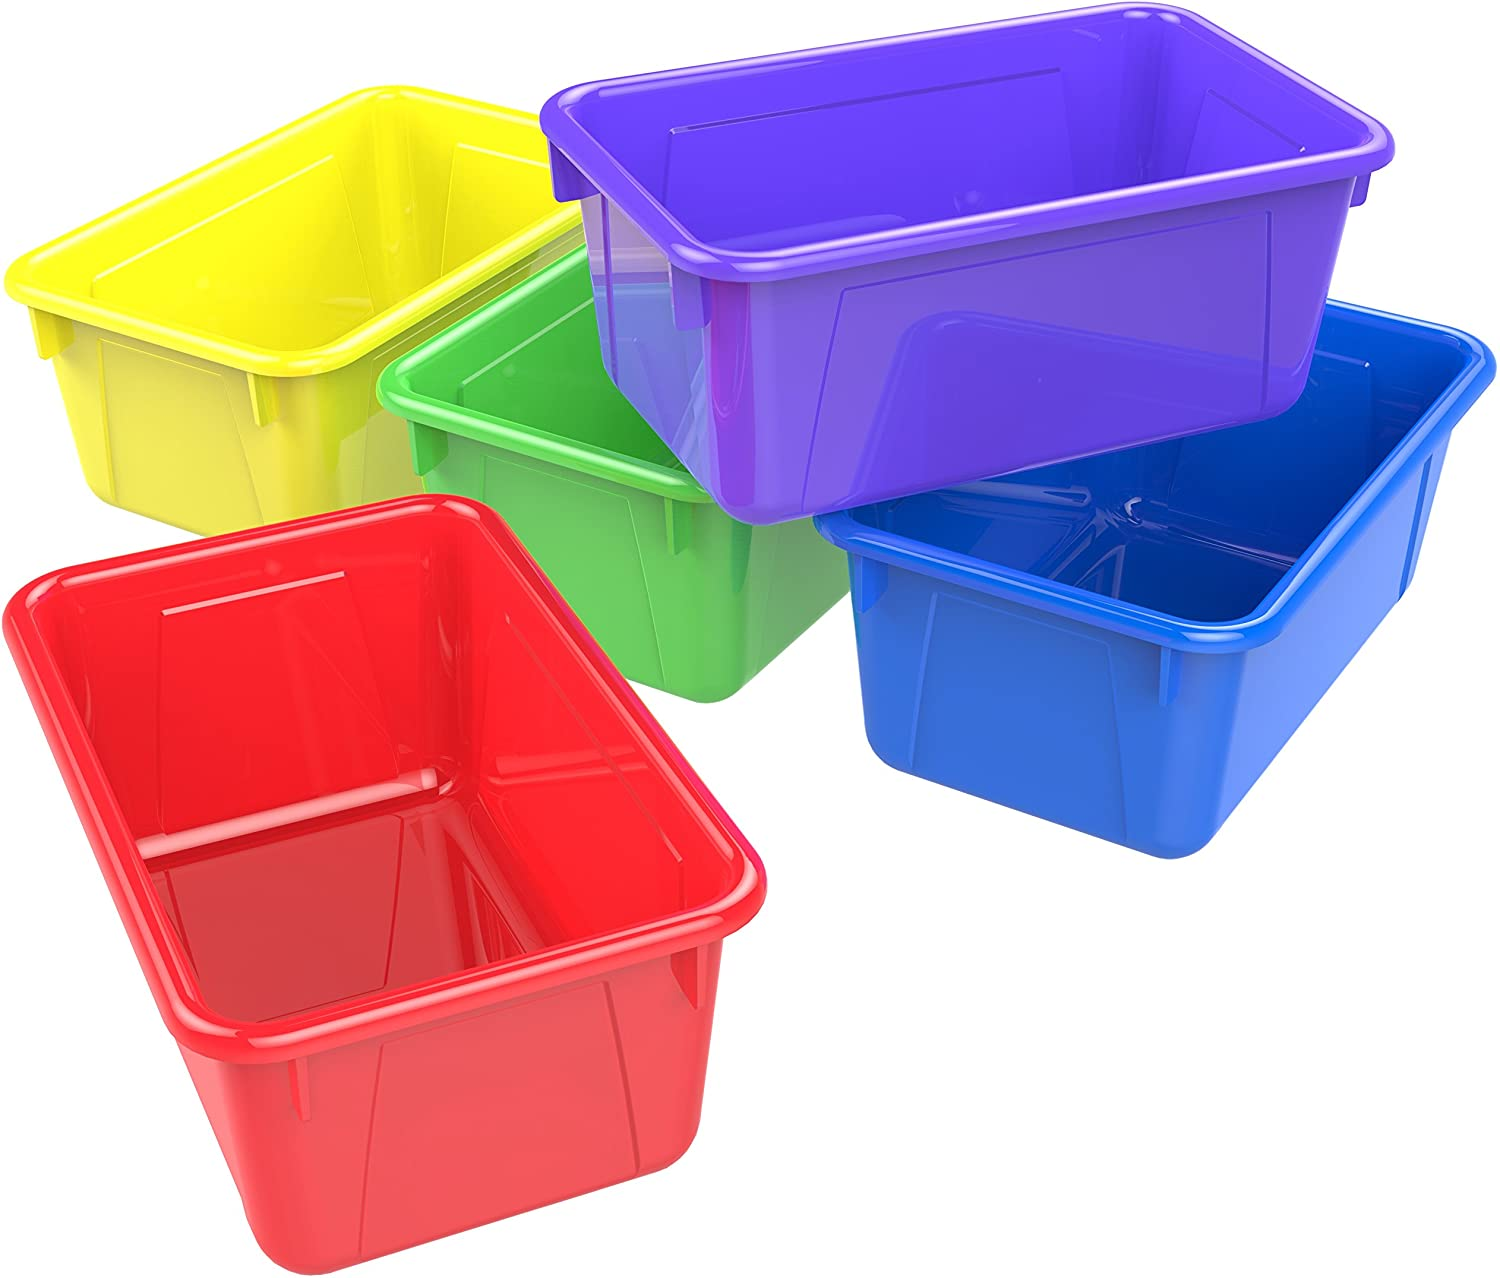 Amazon Com Storex 62414u05c Small Cubby Bin Plastic Storage Container Fits Classroom Cubbies Pack Of 5 12 2 X 7 8 X 1 Assorted Colors Office Products